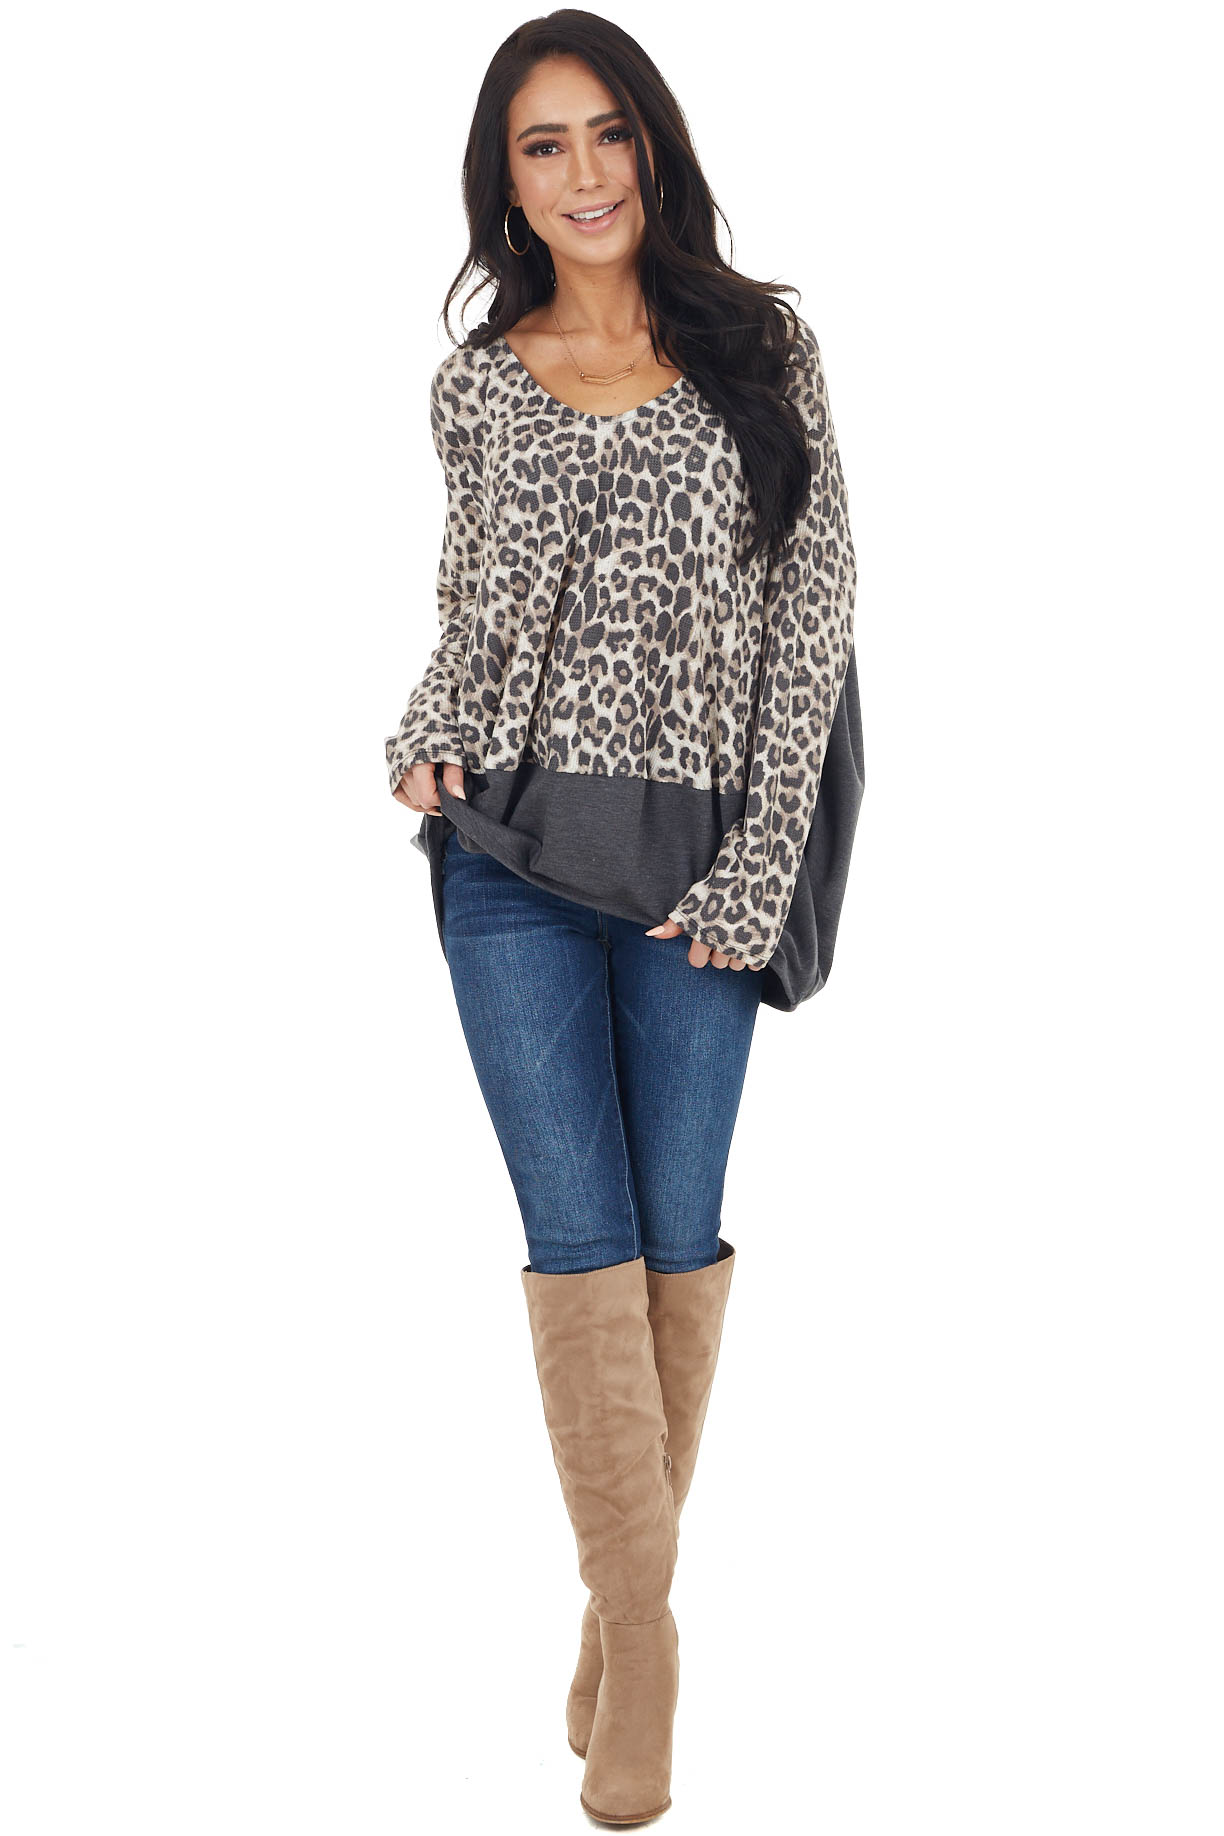 Charcoal Leopard Print Oversized Rounded Hemline Knit Top